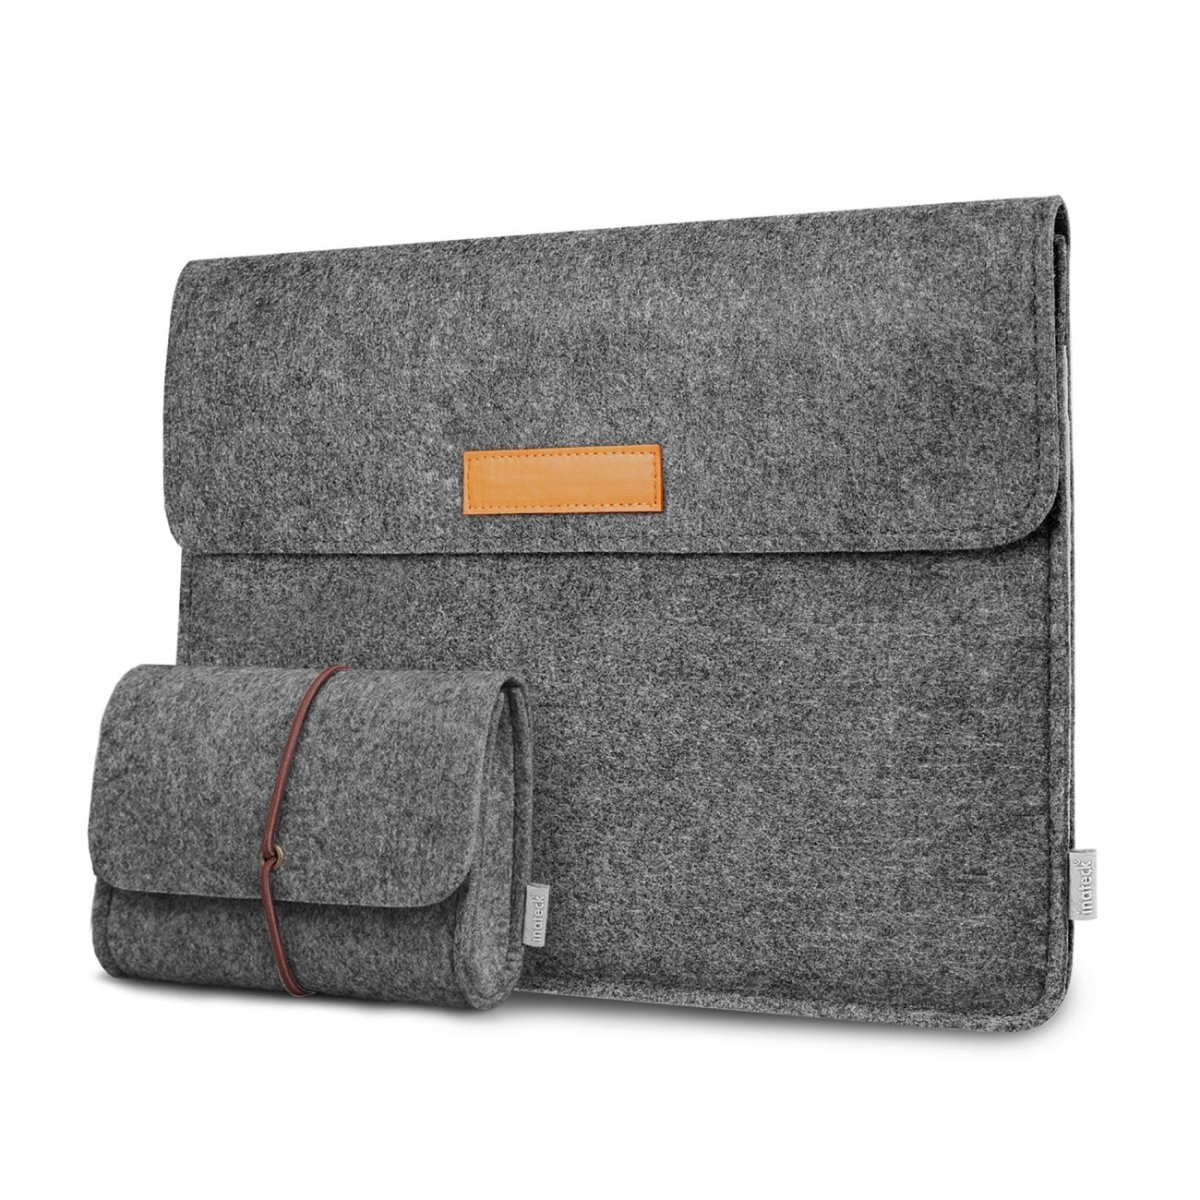 One of my favorite things about the Inateck MacBook sleeve is its versatility: I can use it as a carrying case, or as a sleeve, slipping my Mac into another bag instead.. It has a great look and feel for me, I like the additional felt mouse bag too.